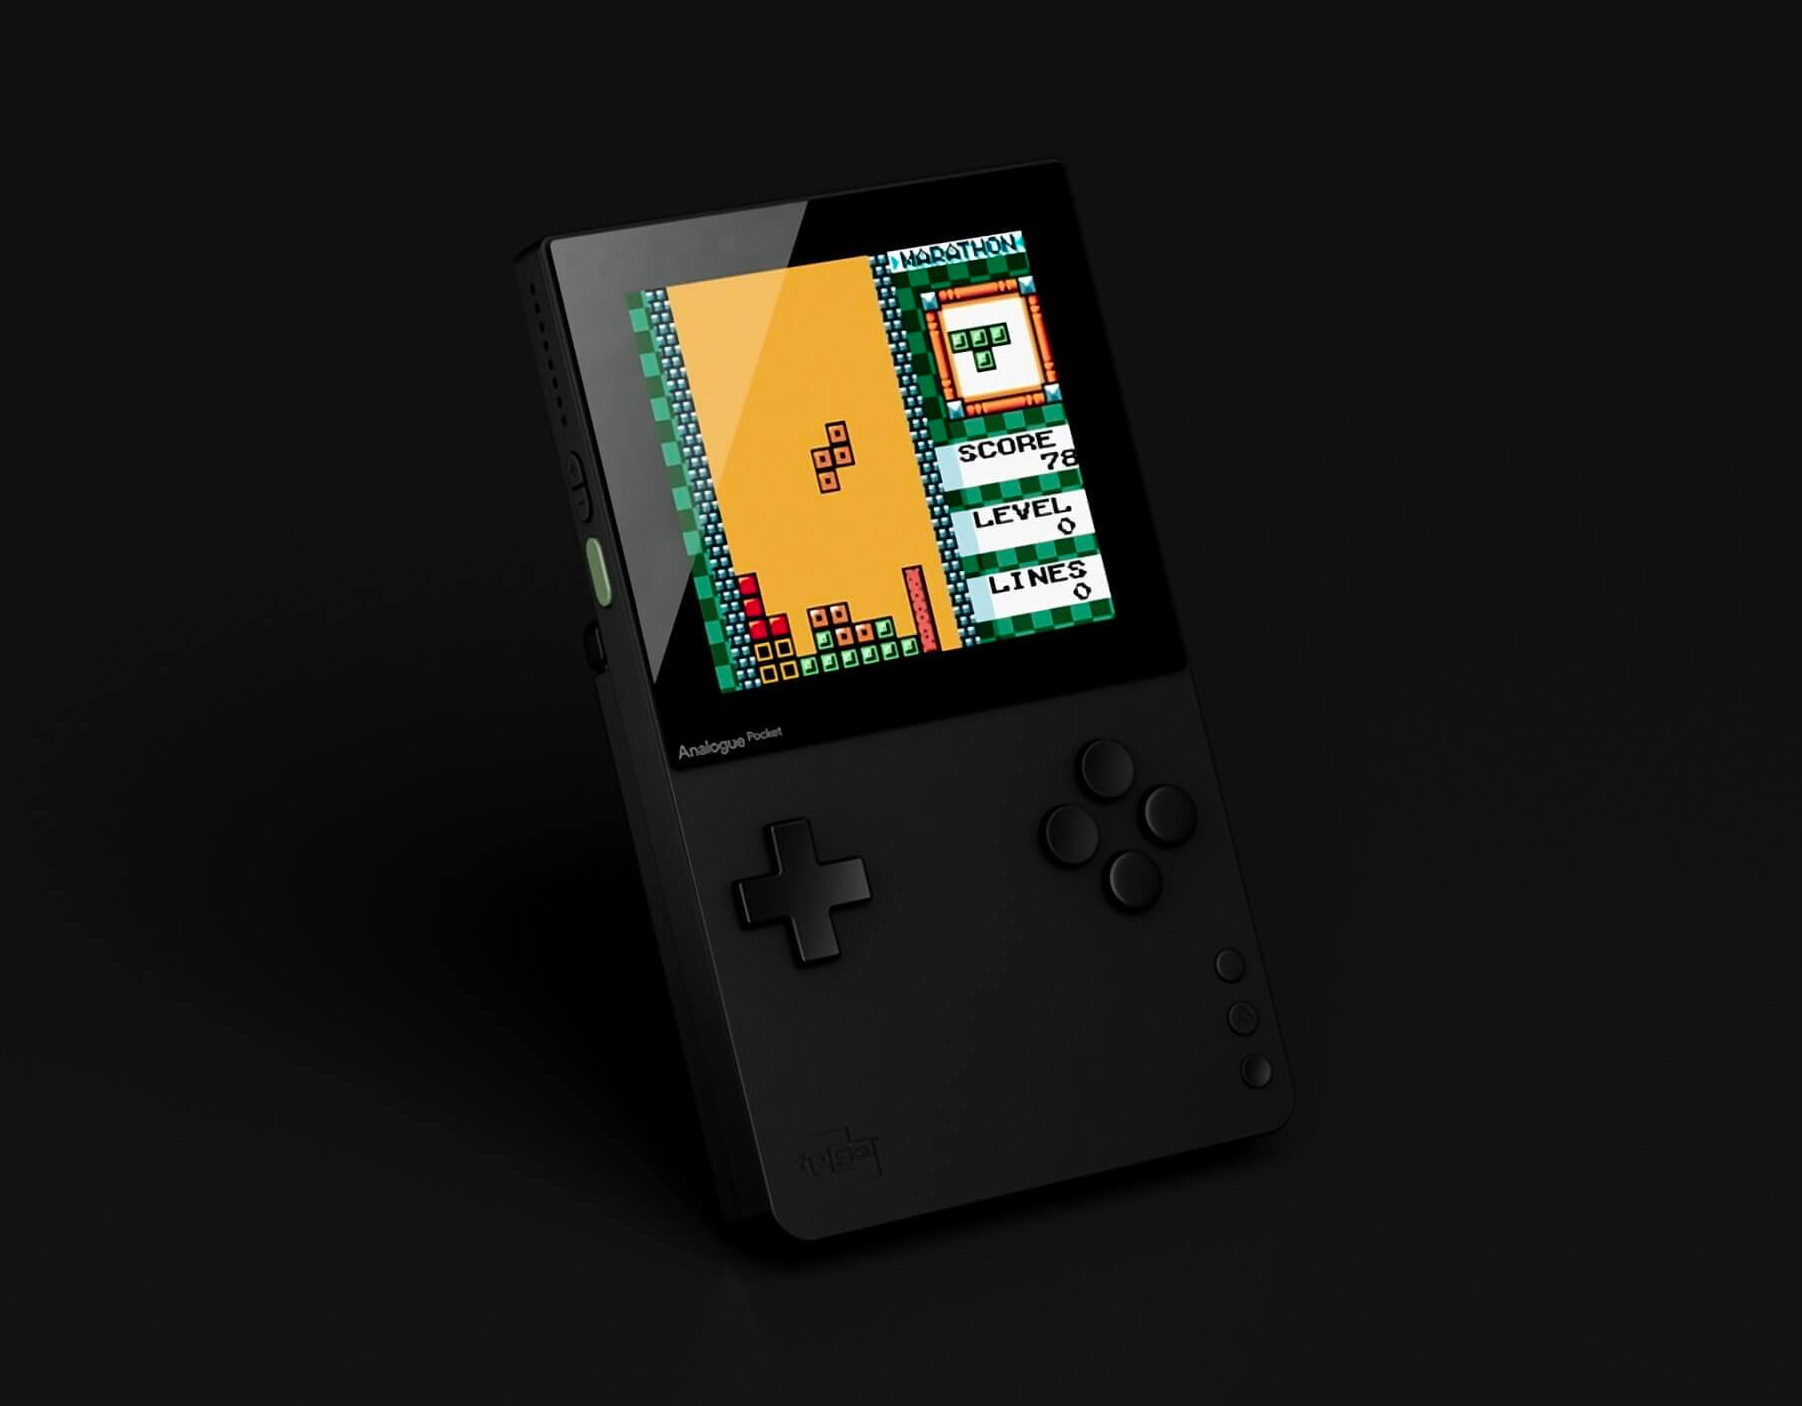 Thanks To Analogue Pocket, Game Boy is Back at werd.com